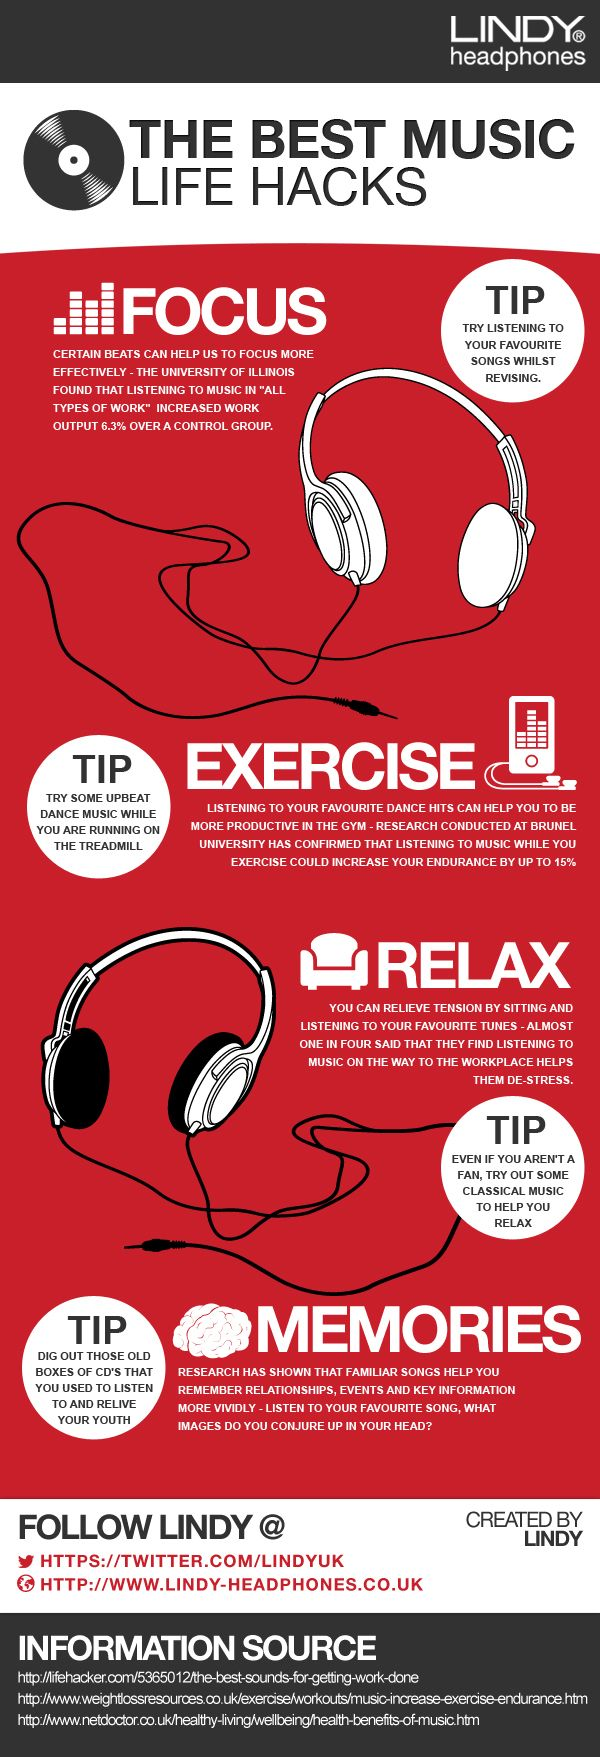 The Best Music Life Hacks.